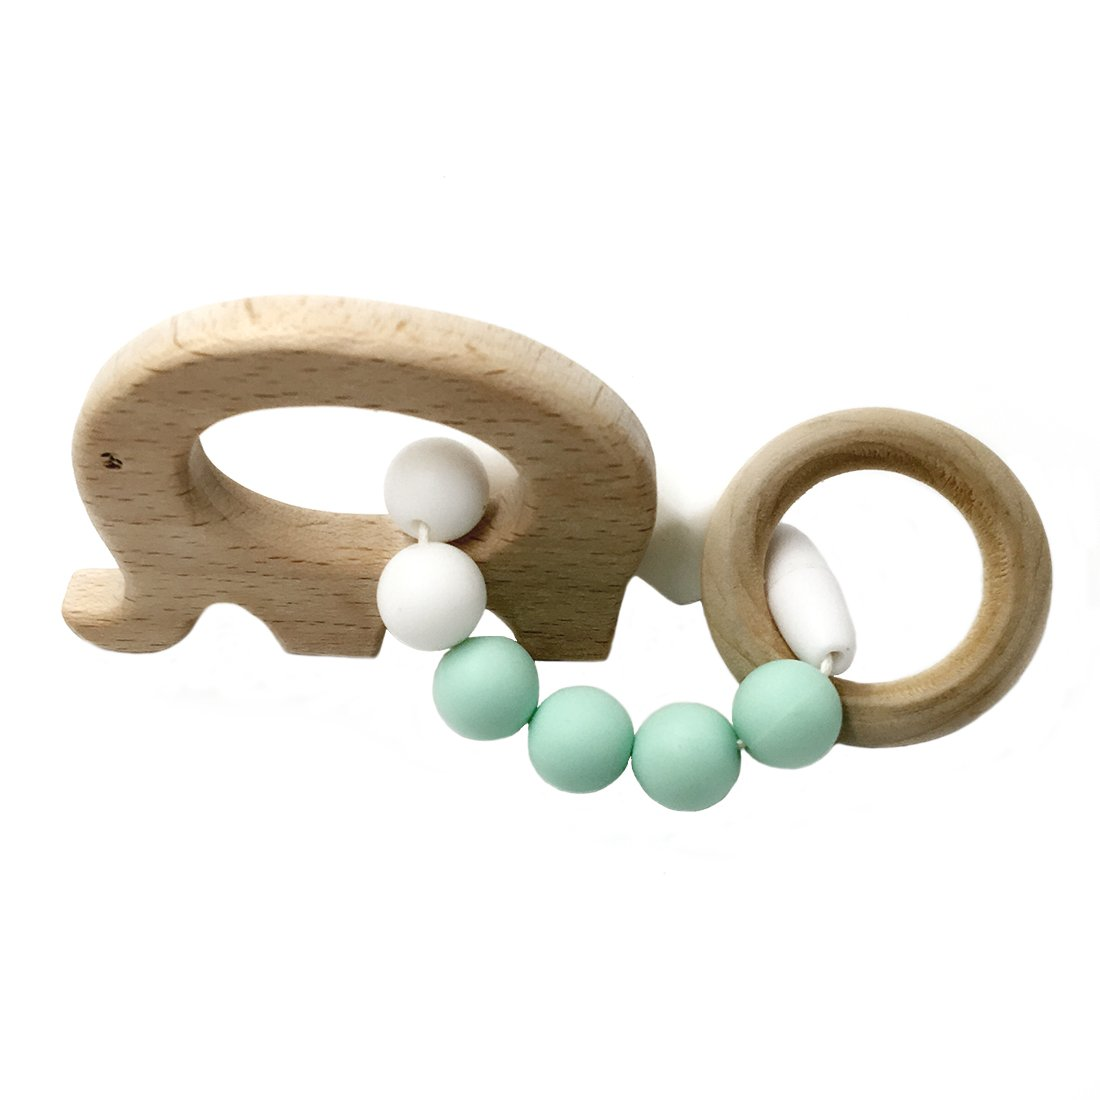 Amyster Wooden Baby Bracelet Animal Shaped Mom Kids Jewelry Teething For Baby Organic Wood Silicone Beads Baby Bangle (S504)